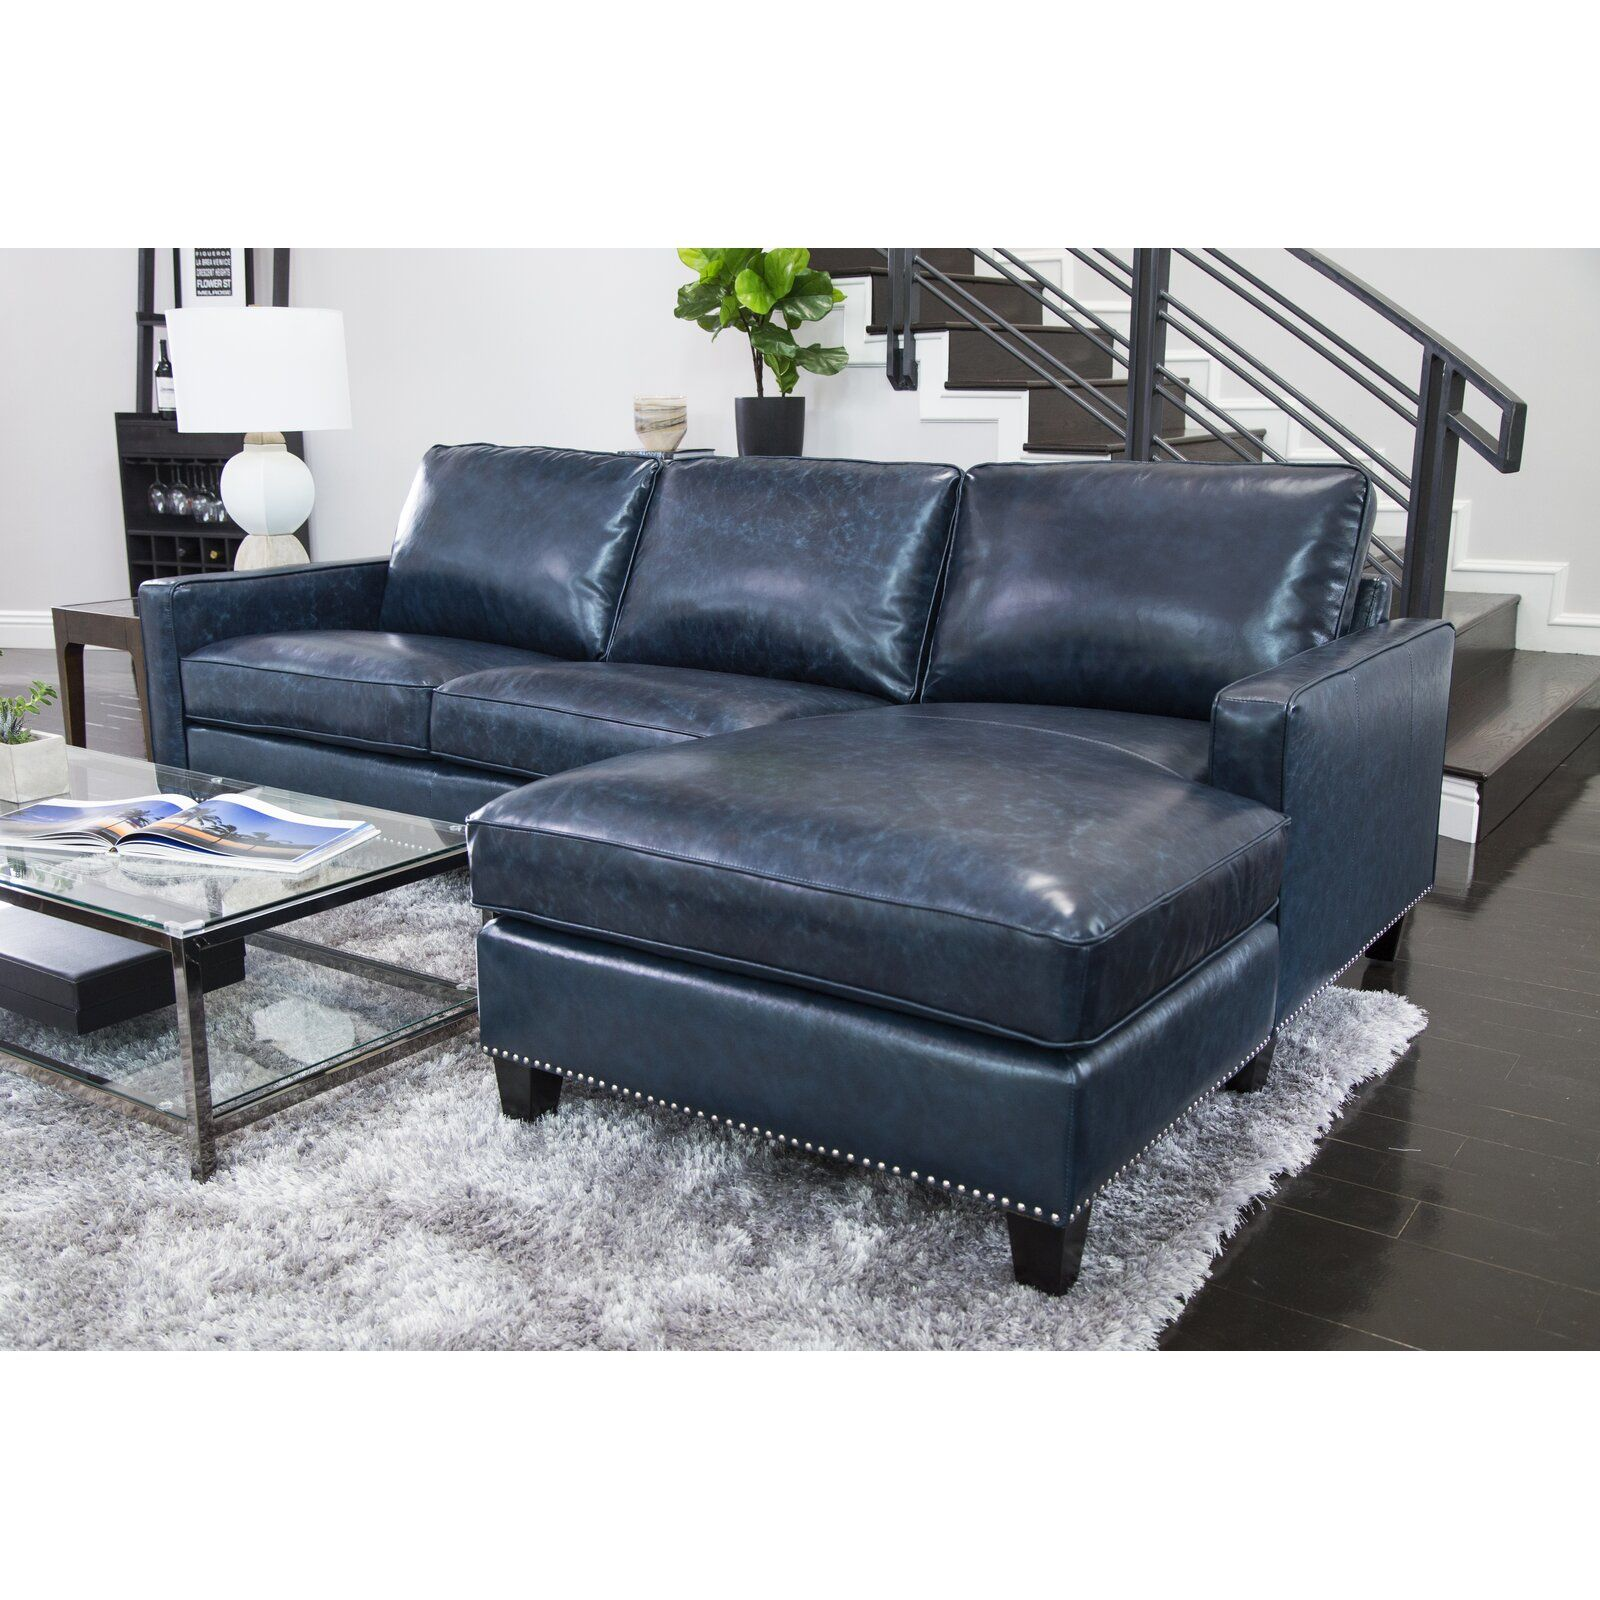 Darby Home Co Samatha Leather Right Hand Facing Sectional Wayfair Blue Leather Couch Sectional Sofa With Chaise Leather Sectional